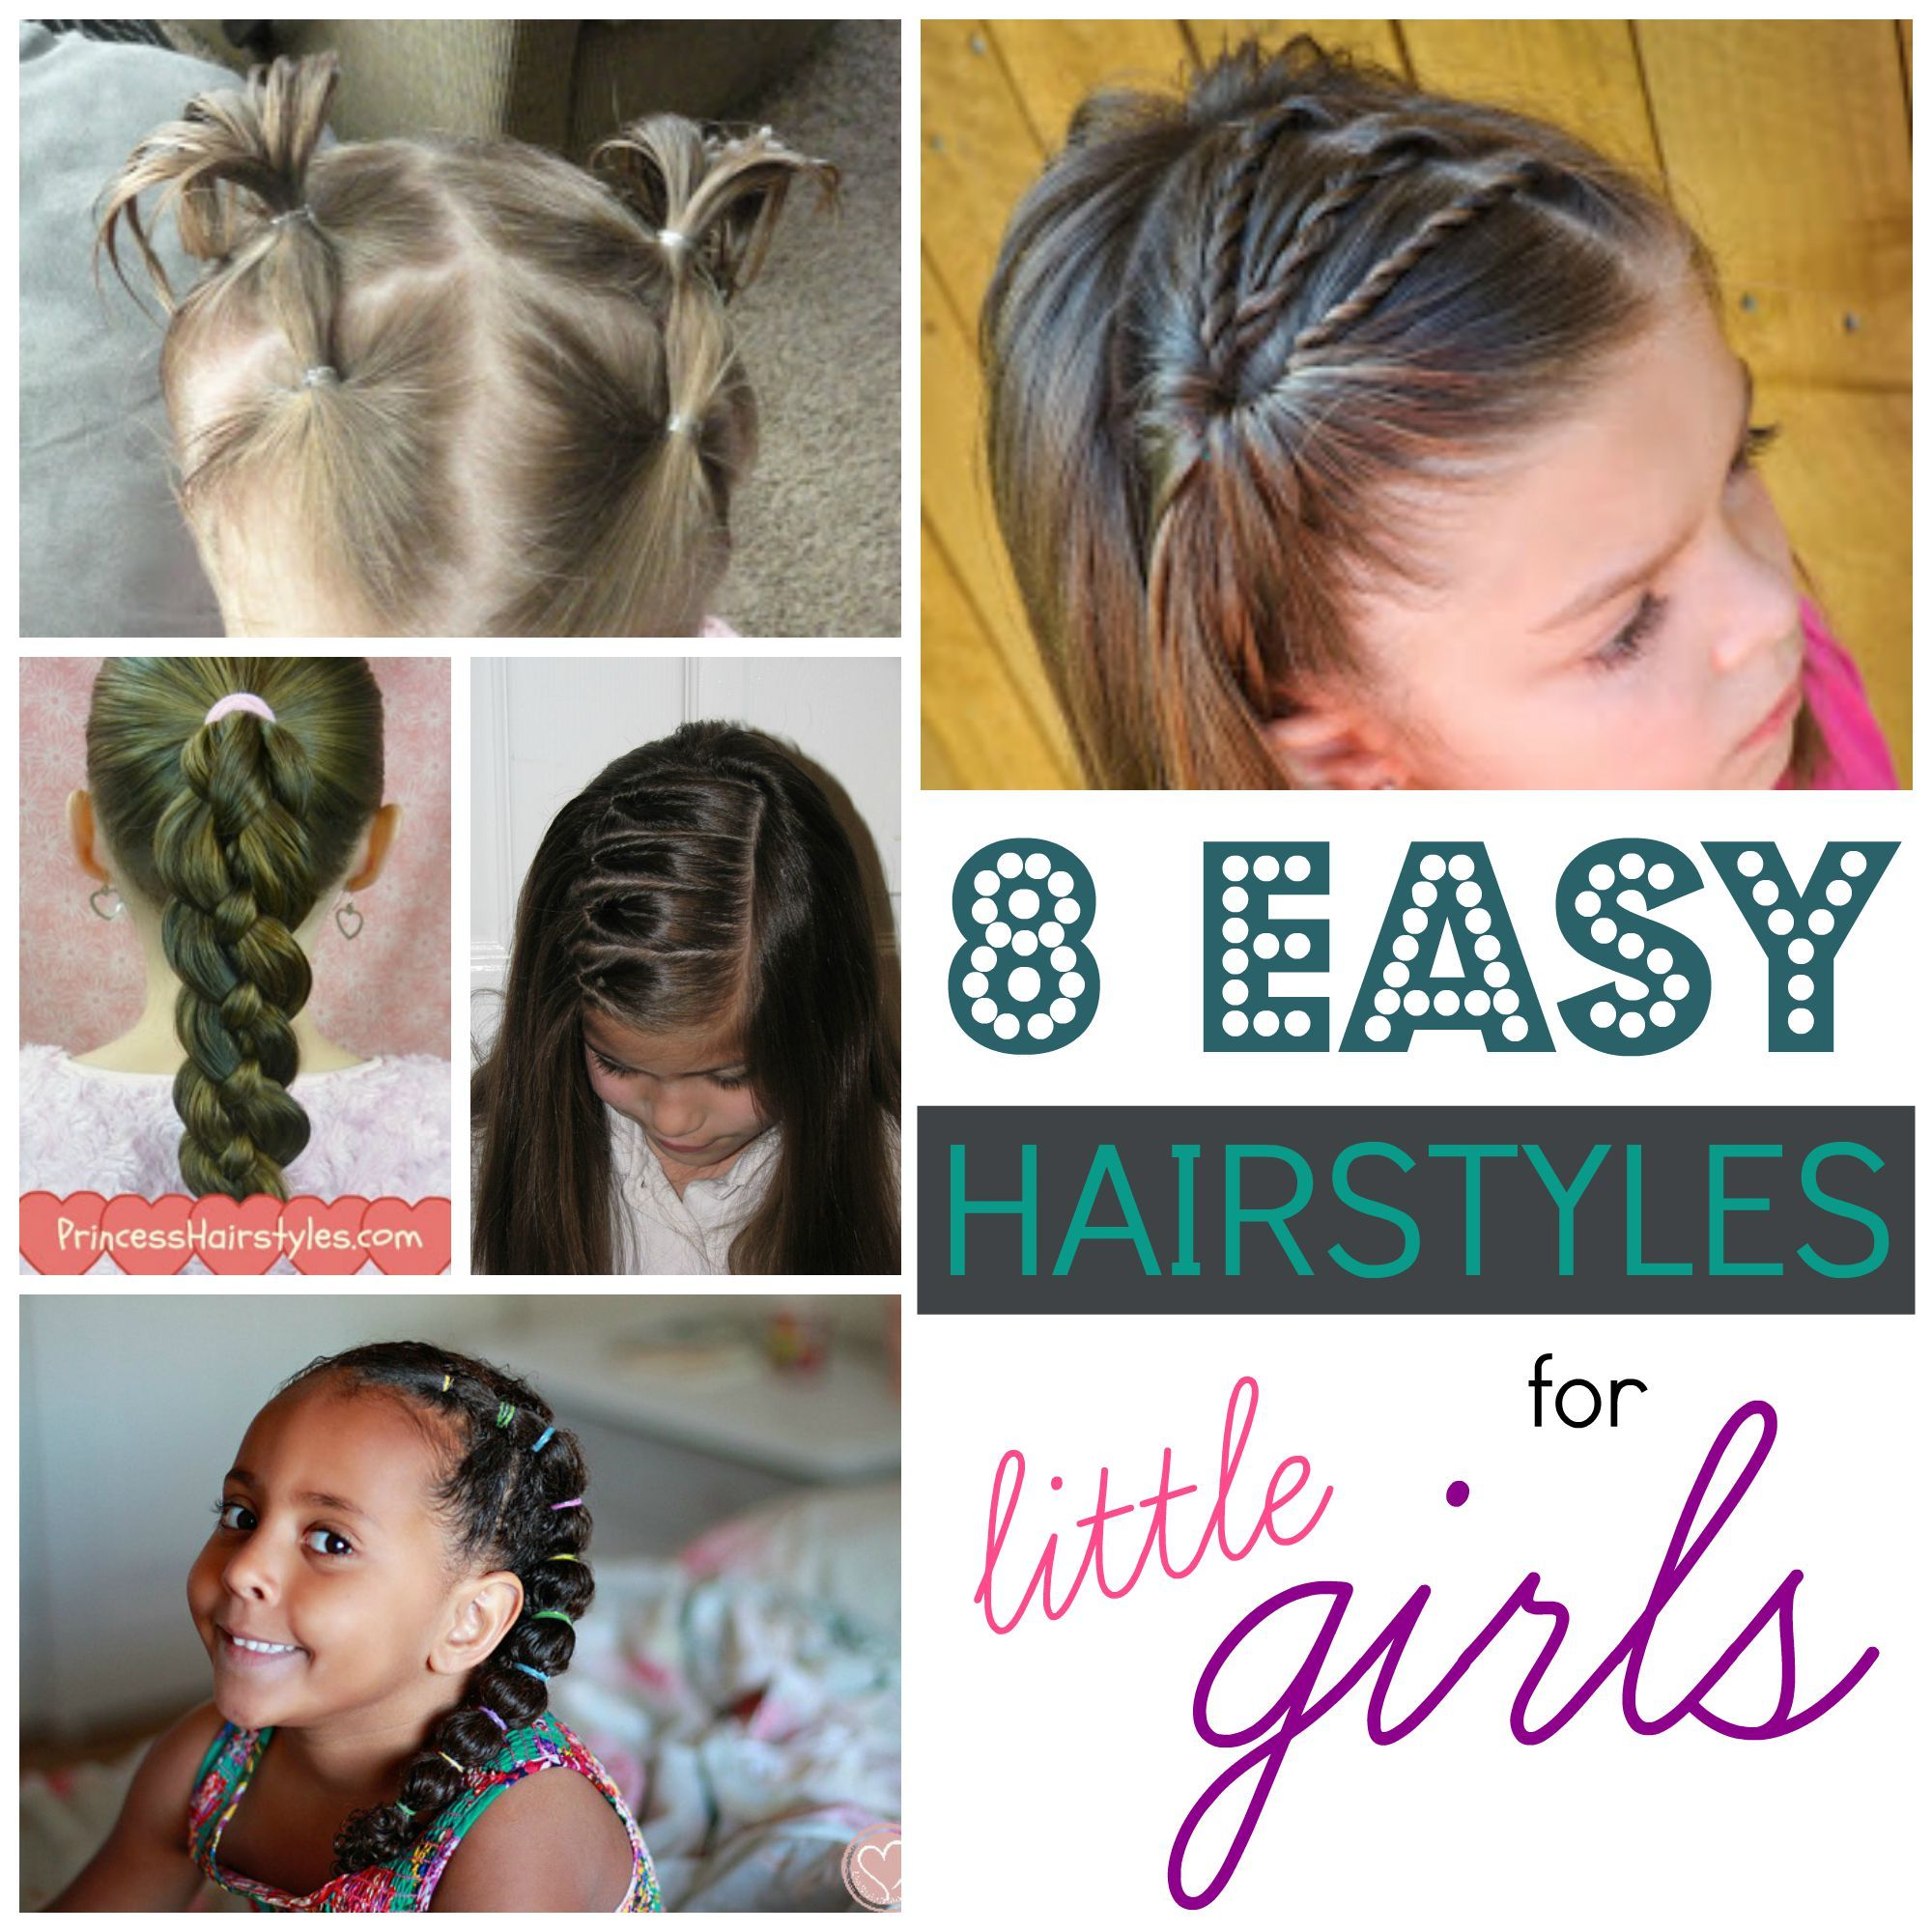 find a cute new hairstyle for your little girl! 8 easy